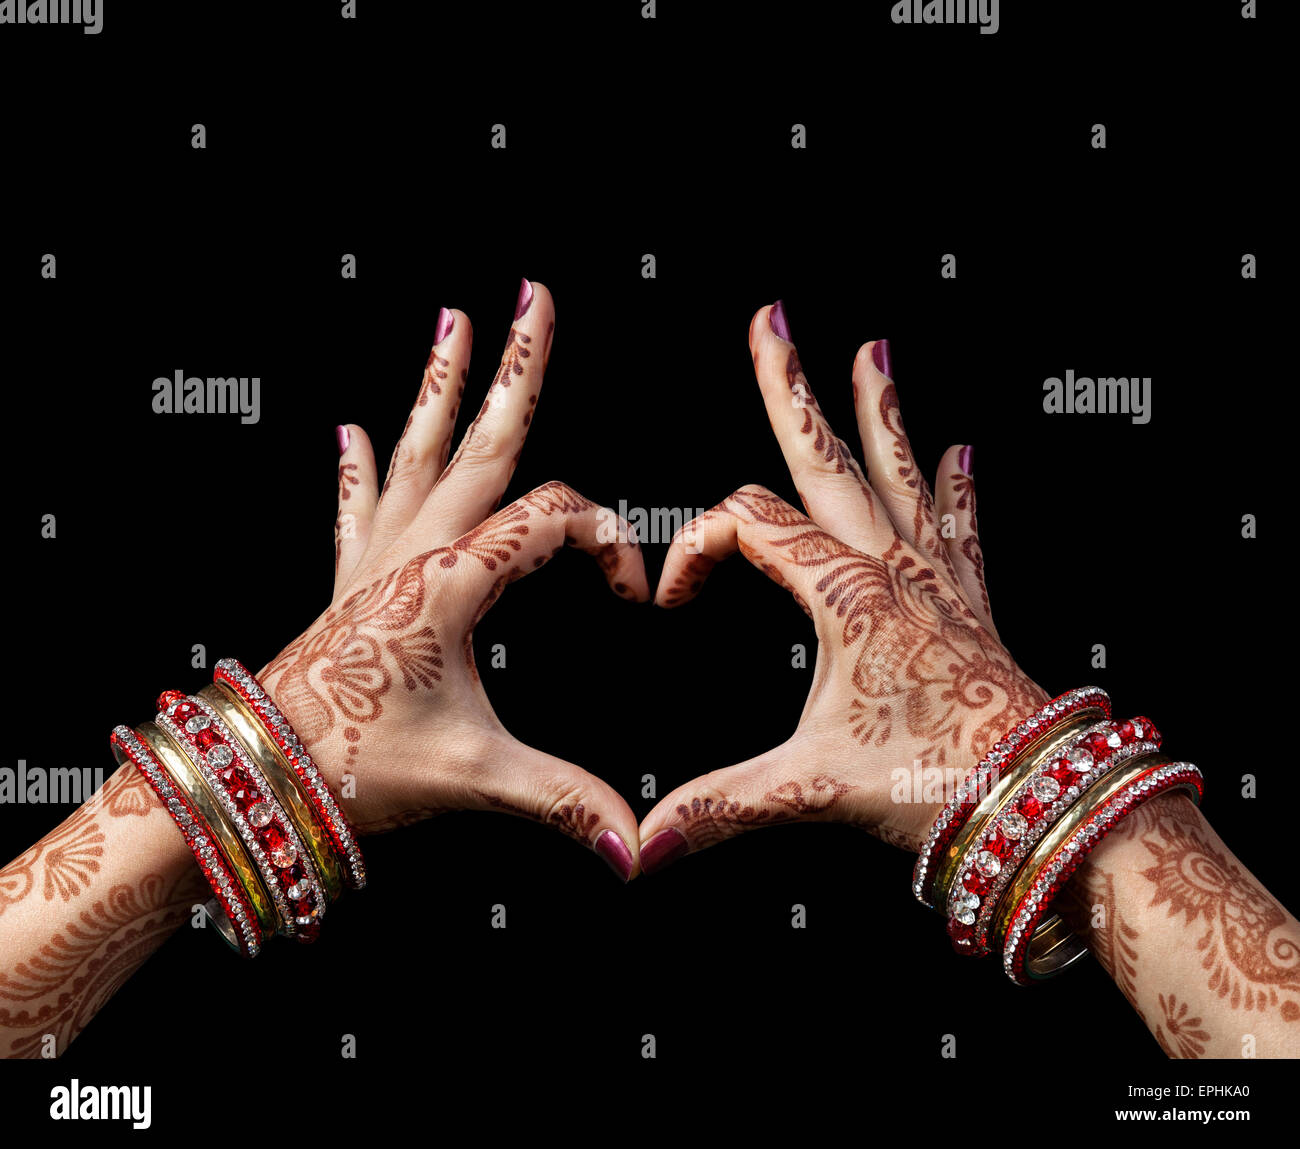 Woman hands with henna doing heart gesture isolated on black background with clipping path - Stock Image